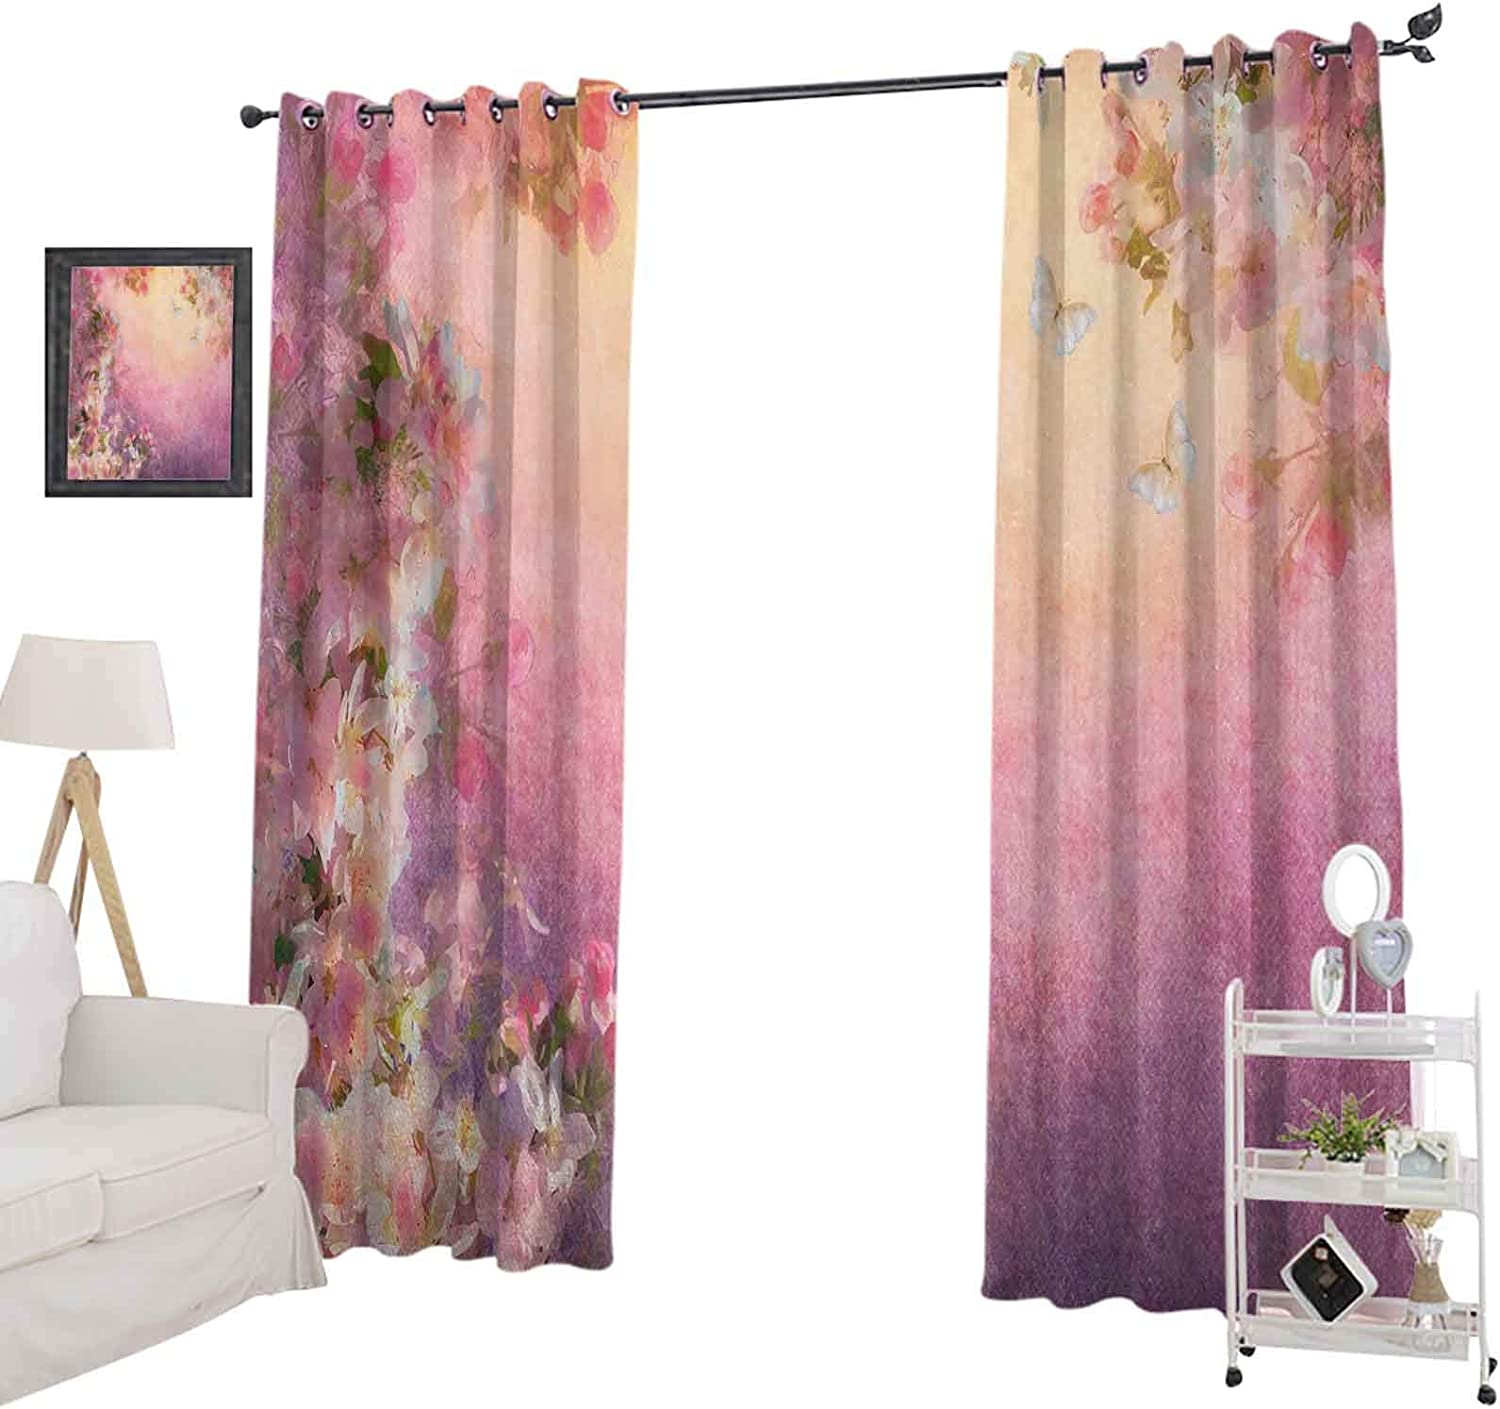 """YUAZHOQI Window Curtain Drape Enchanted Cherry Blossom Petals Field Shabby Chic Floral Garden Spring Picture, Blackout Curtains for Kids Bedroom 52"""" x 63"""", Pale Pink Peach"""